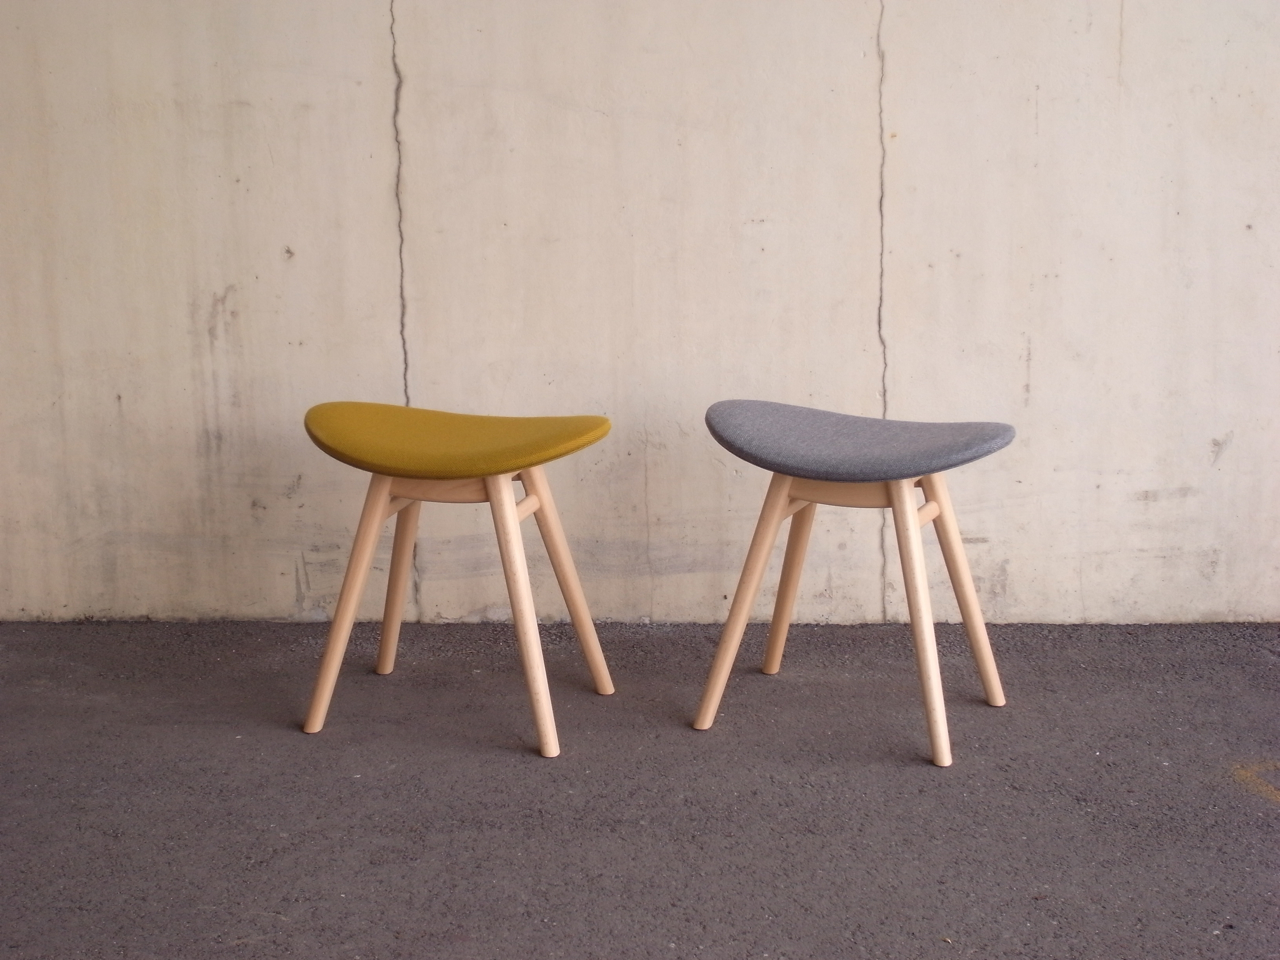 nmd-01 (nomade stool)             w :  475 mm             d :  340 mm             h :  475 mm            sh : 425 mm   material : beech , fabric       finish : oil       price : ¥ 42,000 (with tax) (価格はbeech×fabricのものです)